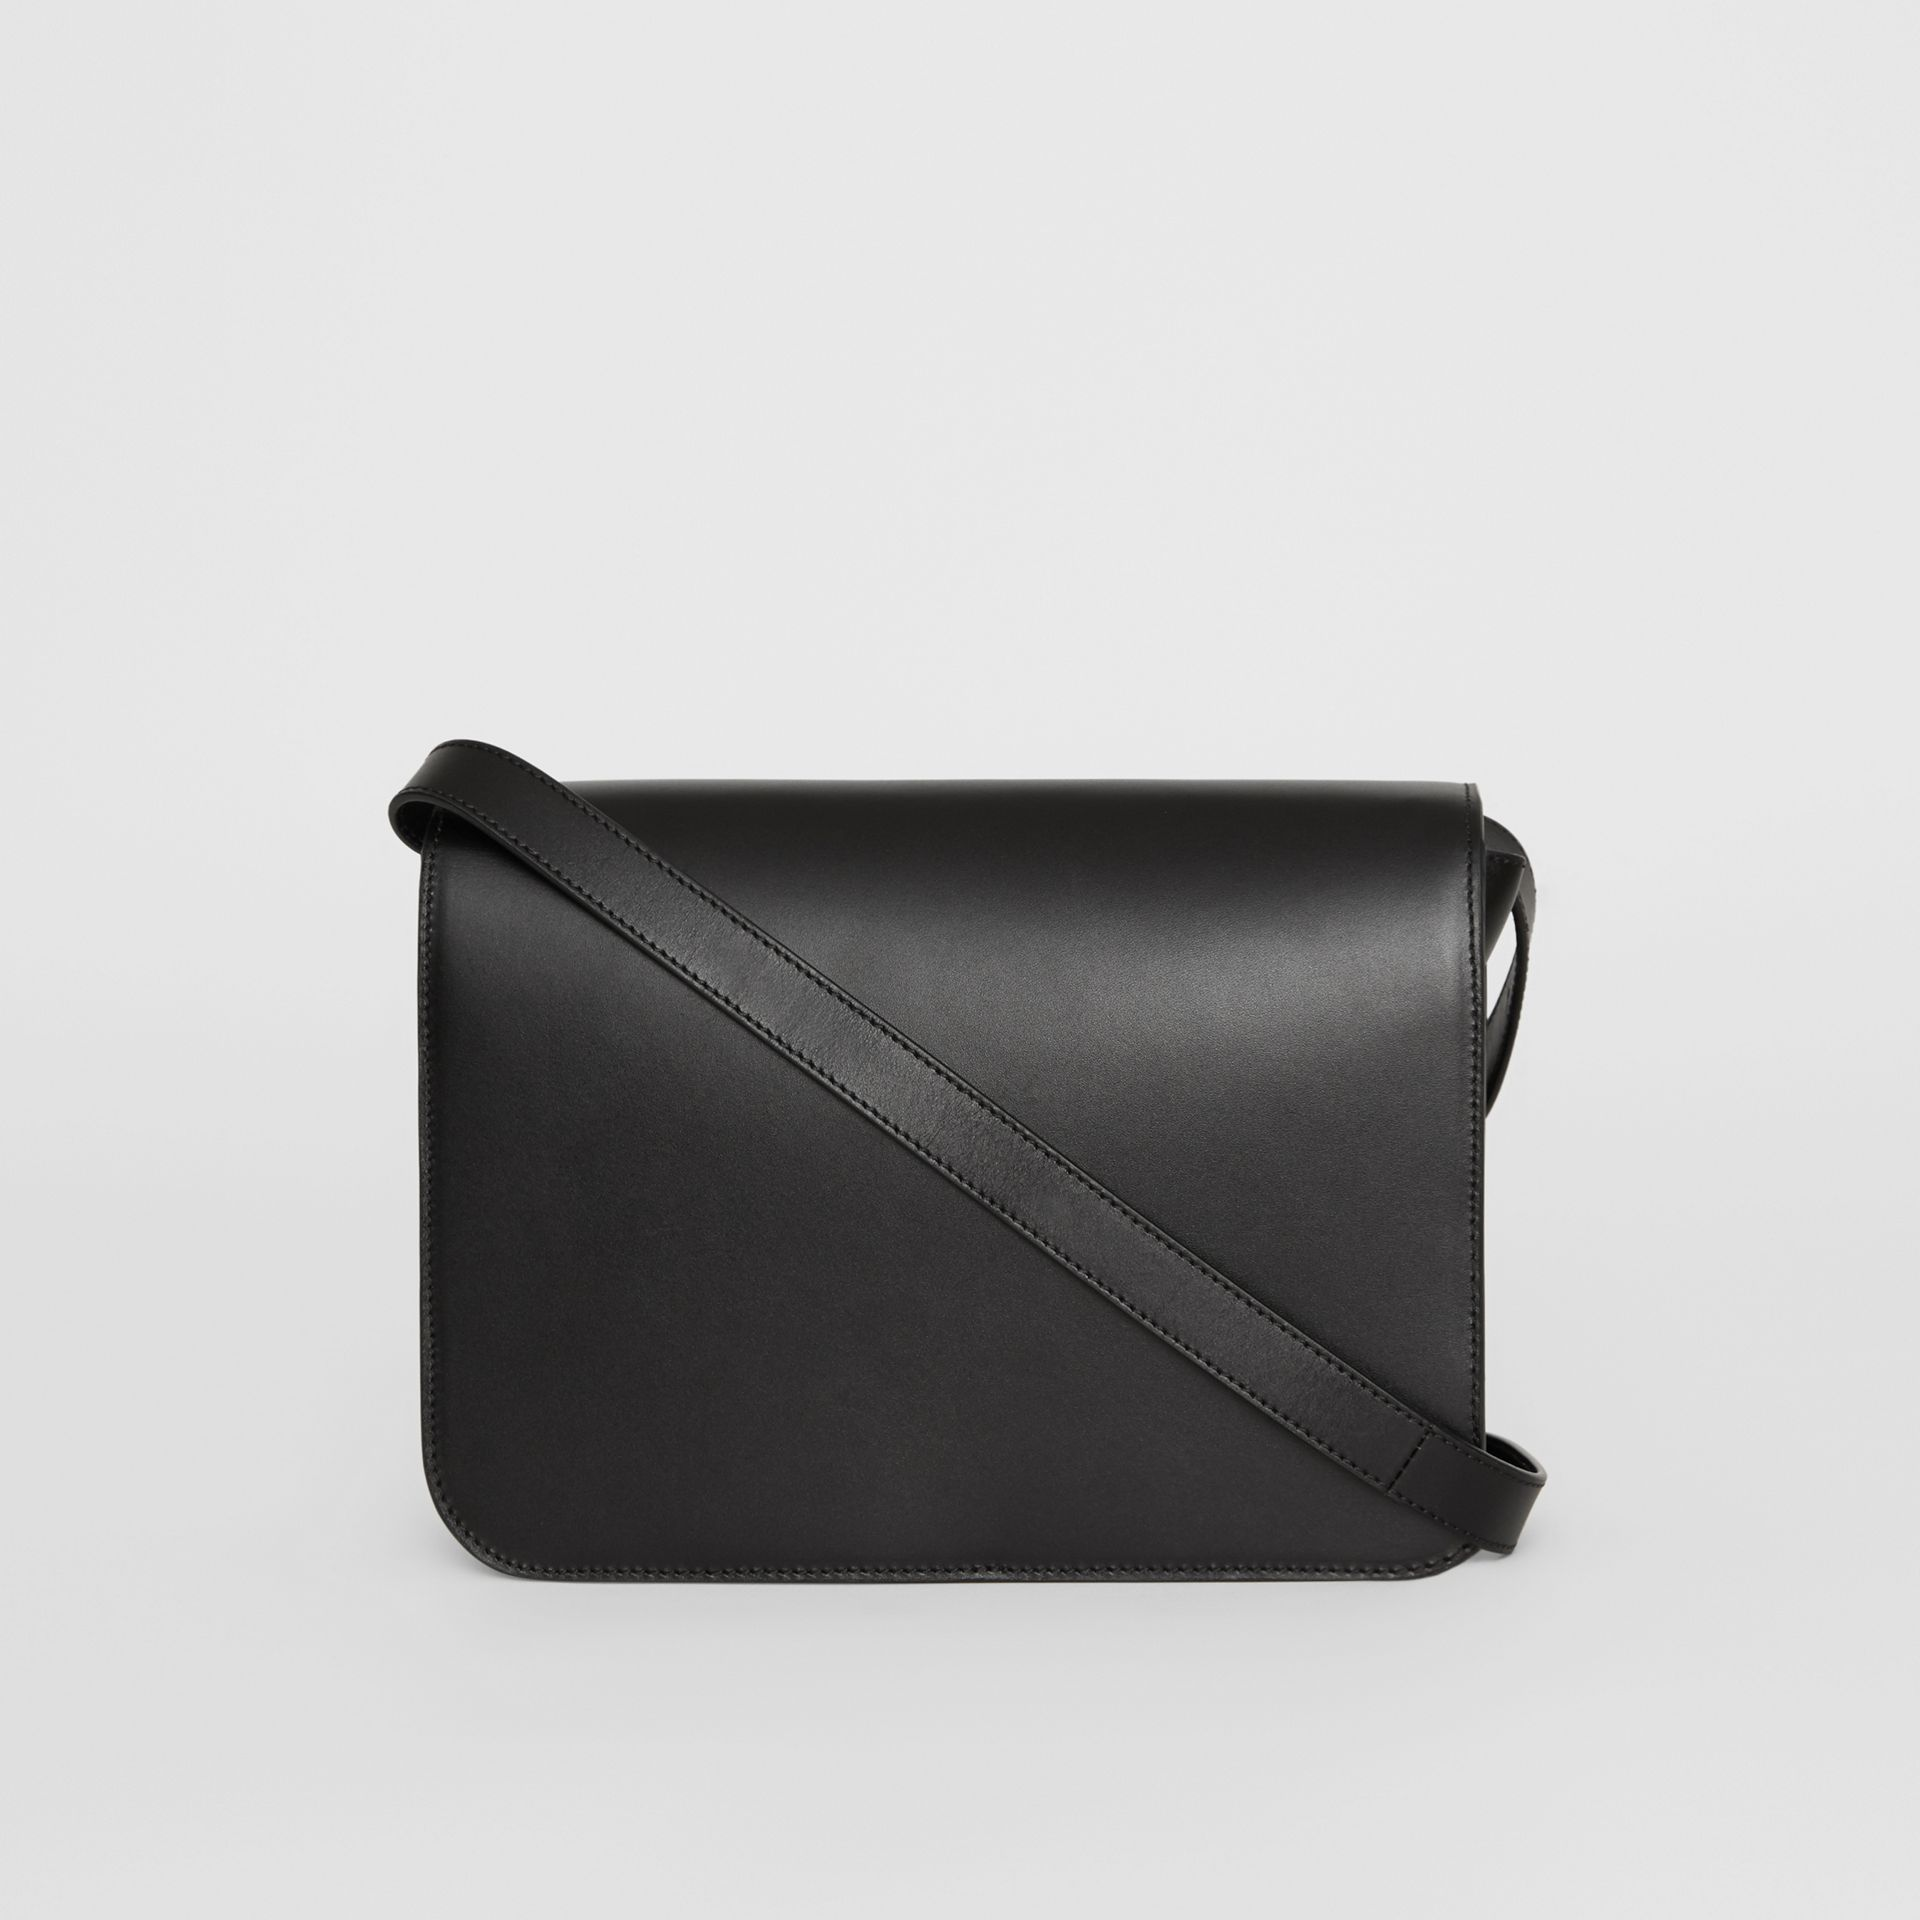 Medium Leather TB Bag in Black - Women | Burberry United Kingdom - gallery image 7